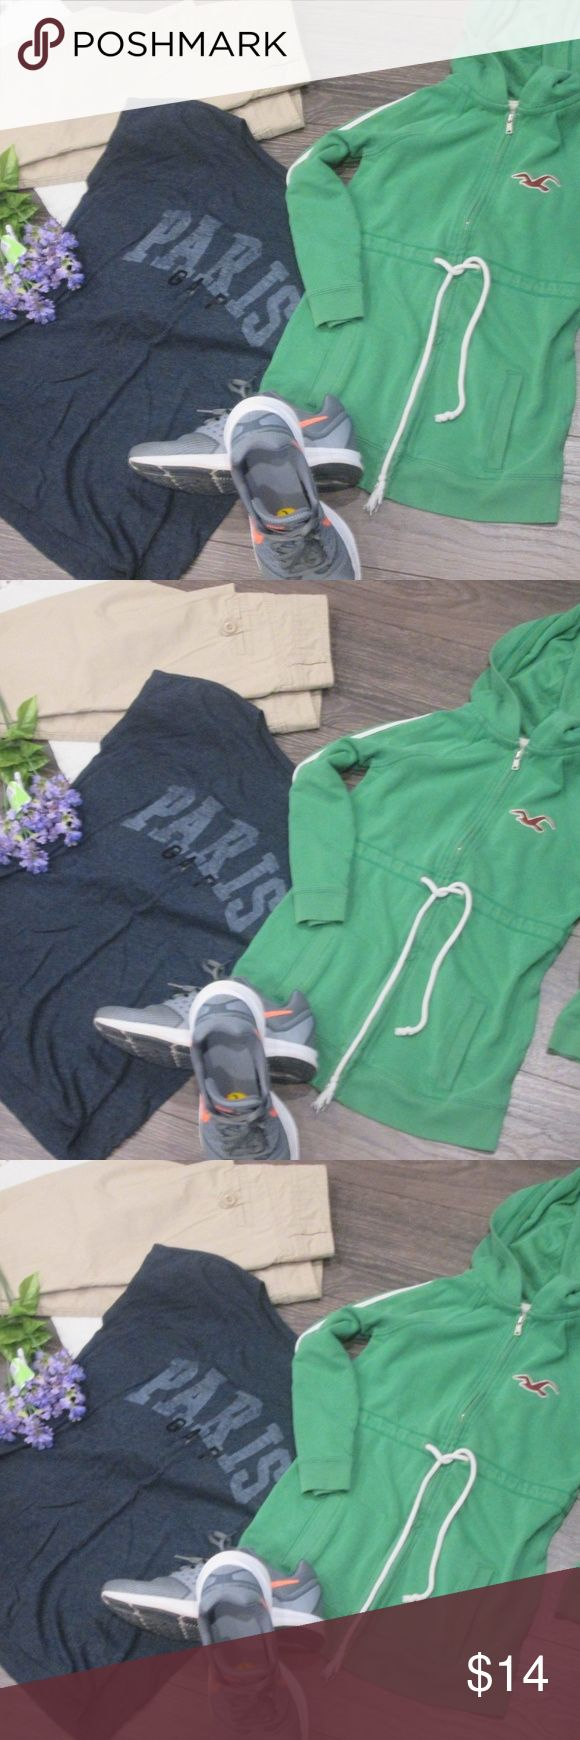 Complete Women's Outfit Pants Khaki + Tee + Hoodie Women's 3 Piece Outfit  1. Maurices Pants Khaki Size 3/4 Regular  2. Gap Tee Dark Grey Size Small Paris  3. Hollister Hoodie Green Size Small  Non smoking home  Purse/Shoes Not Included! Please Inquire for Availability! Hollister Pants Trousers